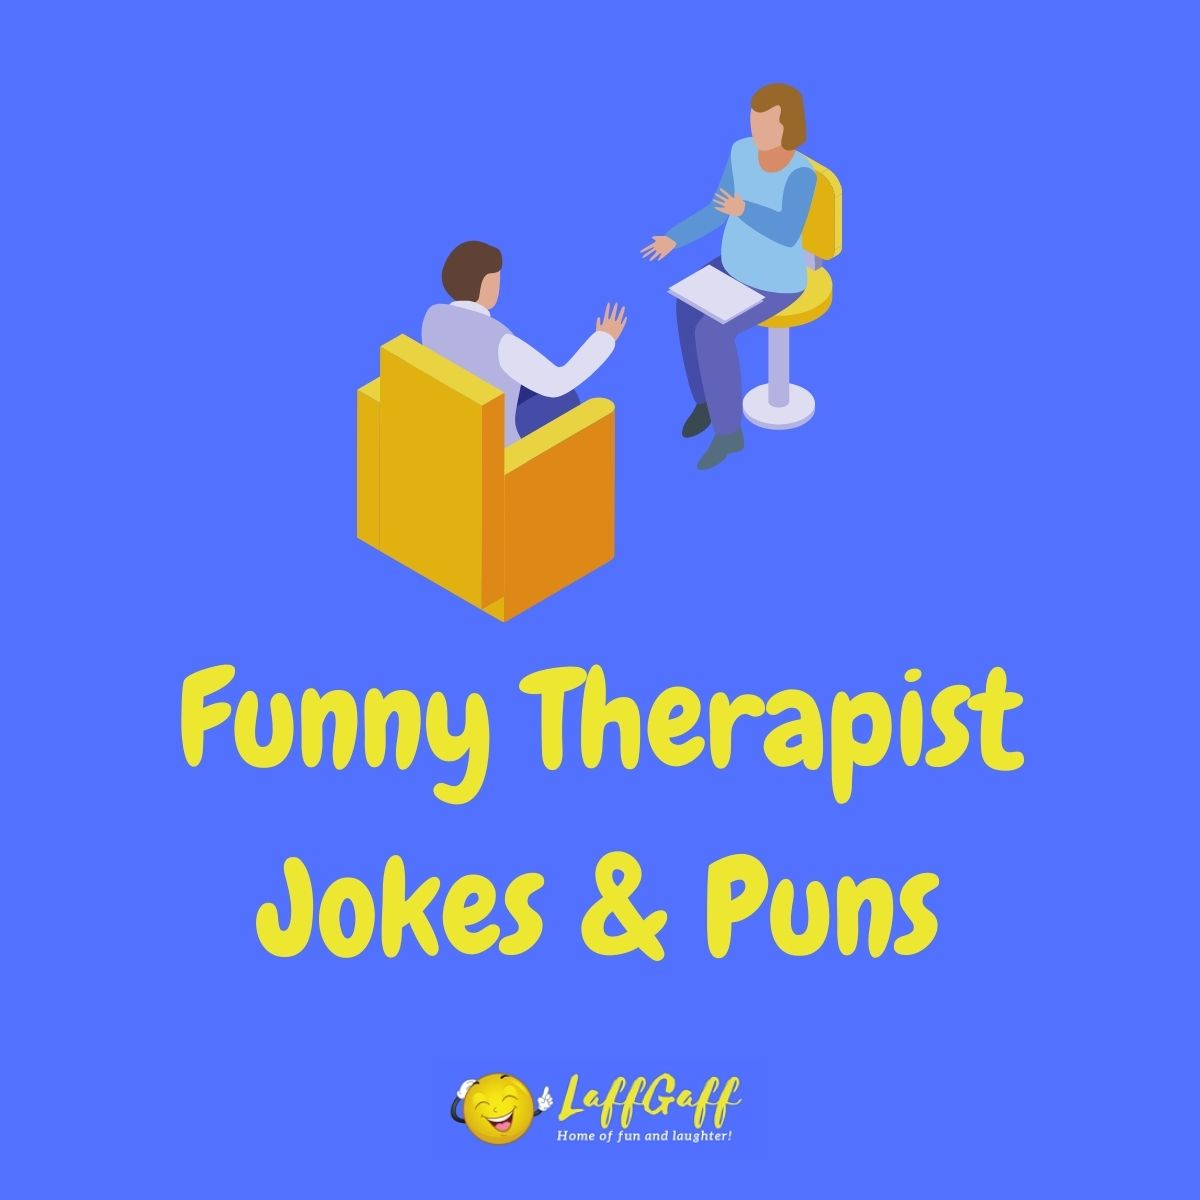 Featured image for a page of funny therapy jokes and puns.